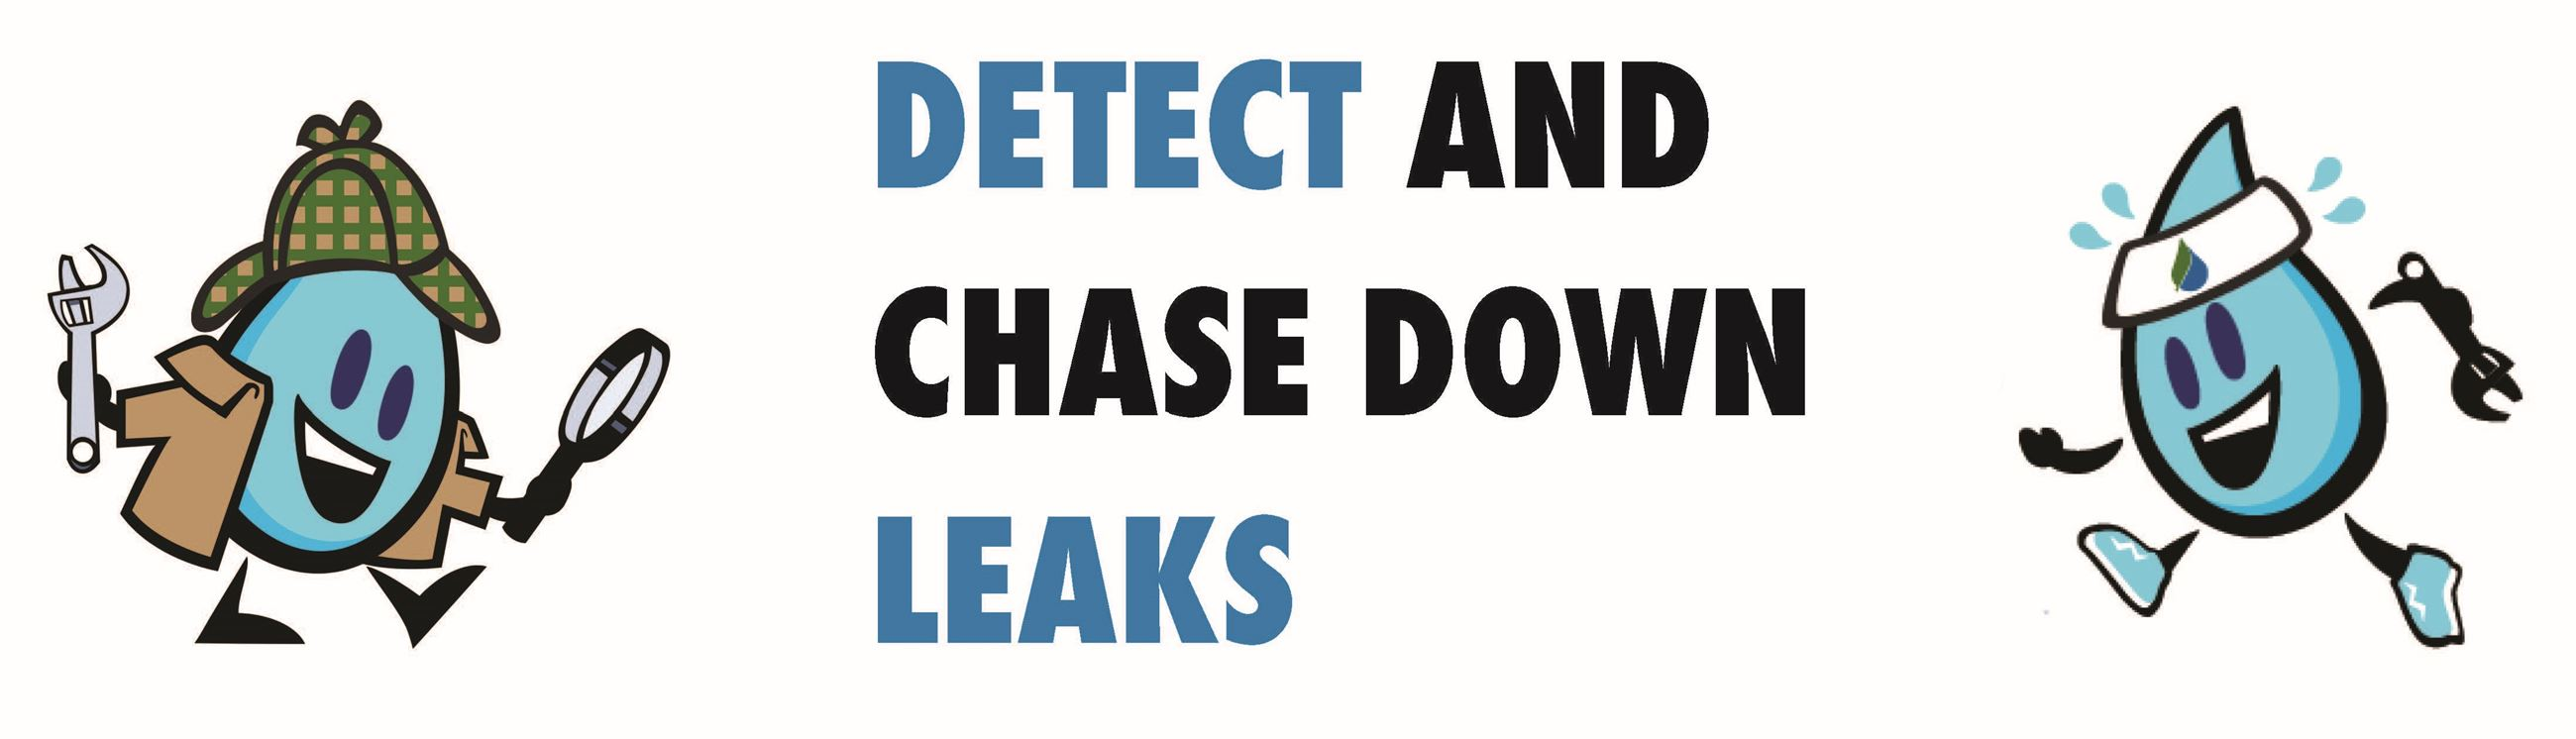 Chase Down Leaks